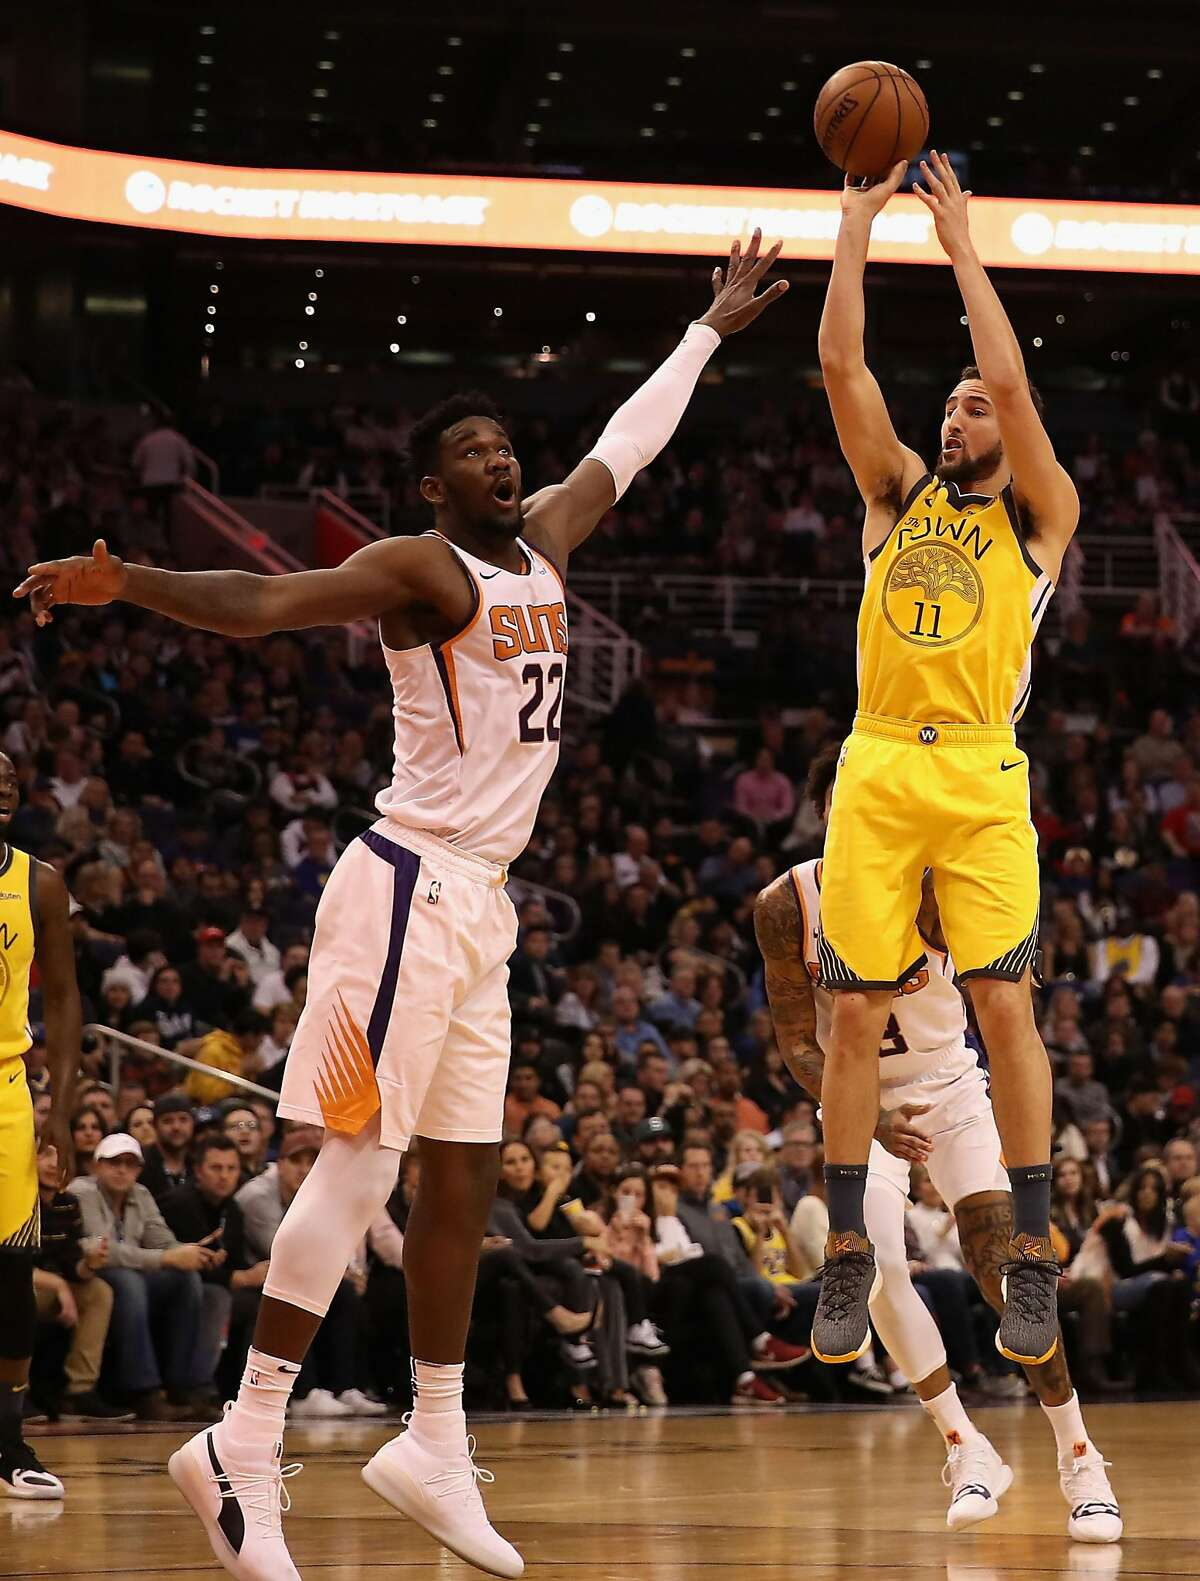 PHOENIX, ARIZONA - DECEMBER 31: Klay Thompson #11 of the Golden State Warriors puts up a shot over Deandre Ayton #22 of the Phoenix Suns during the first half of the NBA game at Talking Stick Resort Arena on December 31, 2018 in Phoenix, Arizona. The Warriors defeated the Suns 132-109. (Photo by Christian Petersen/Getty Images)